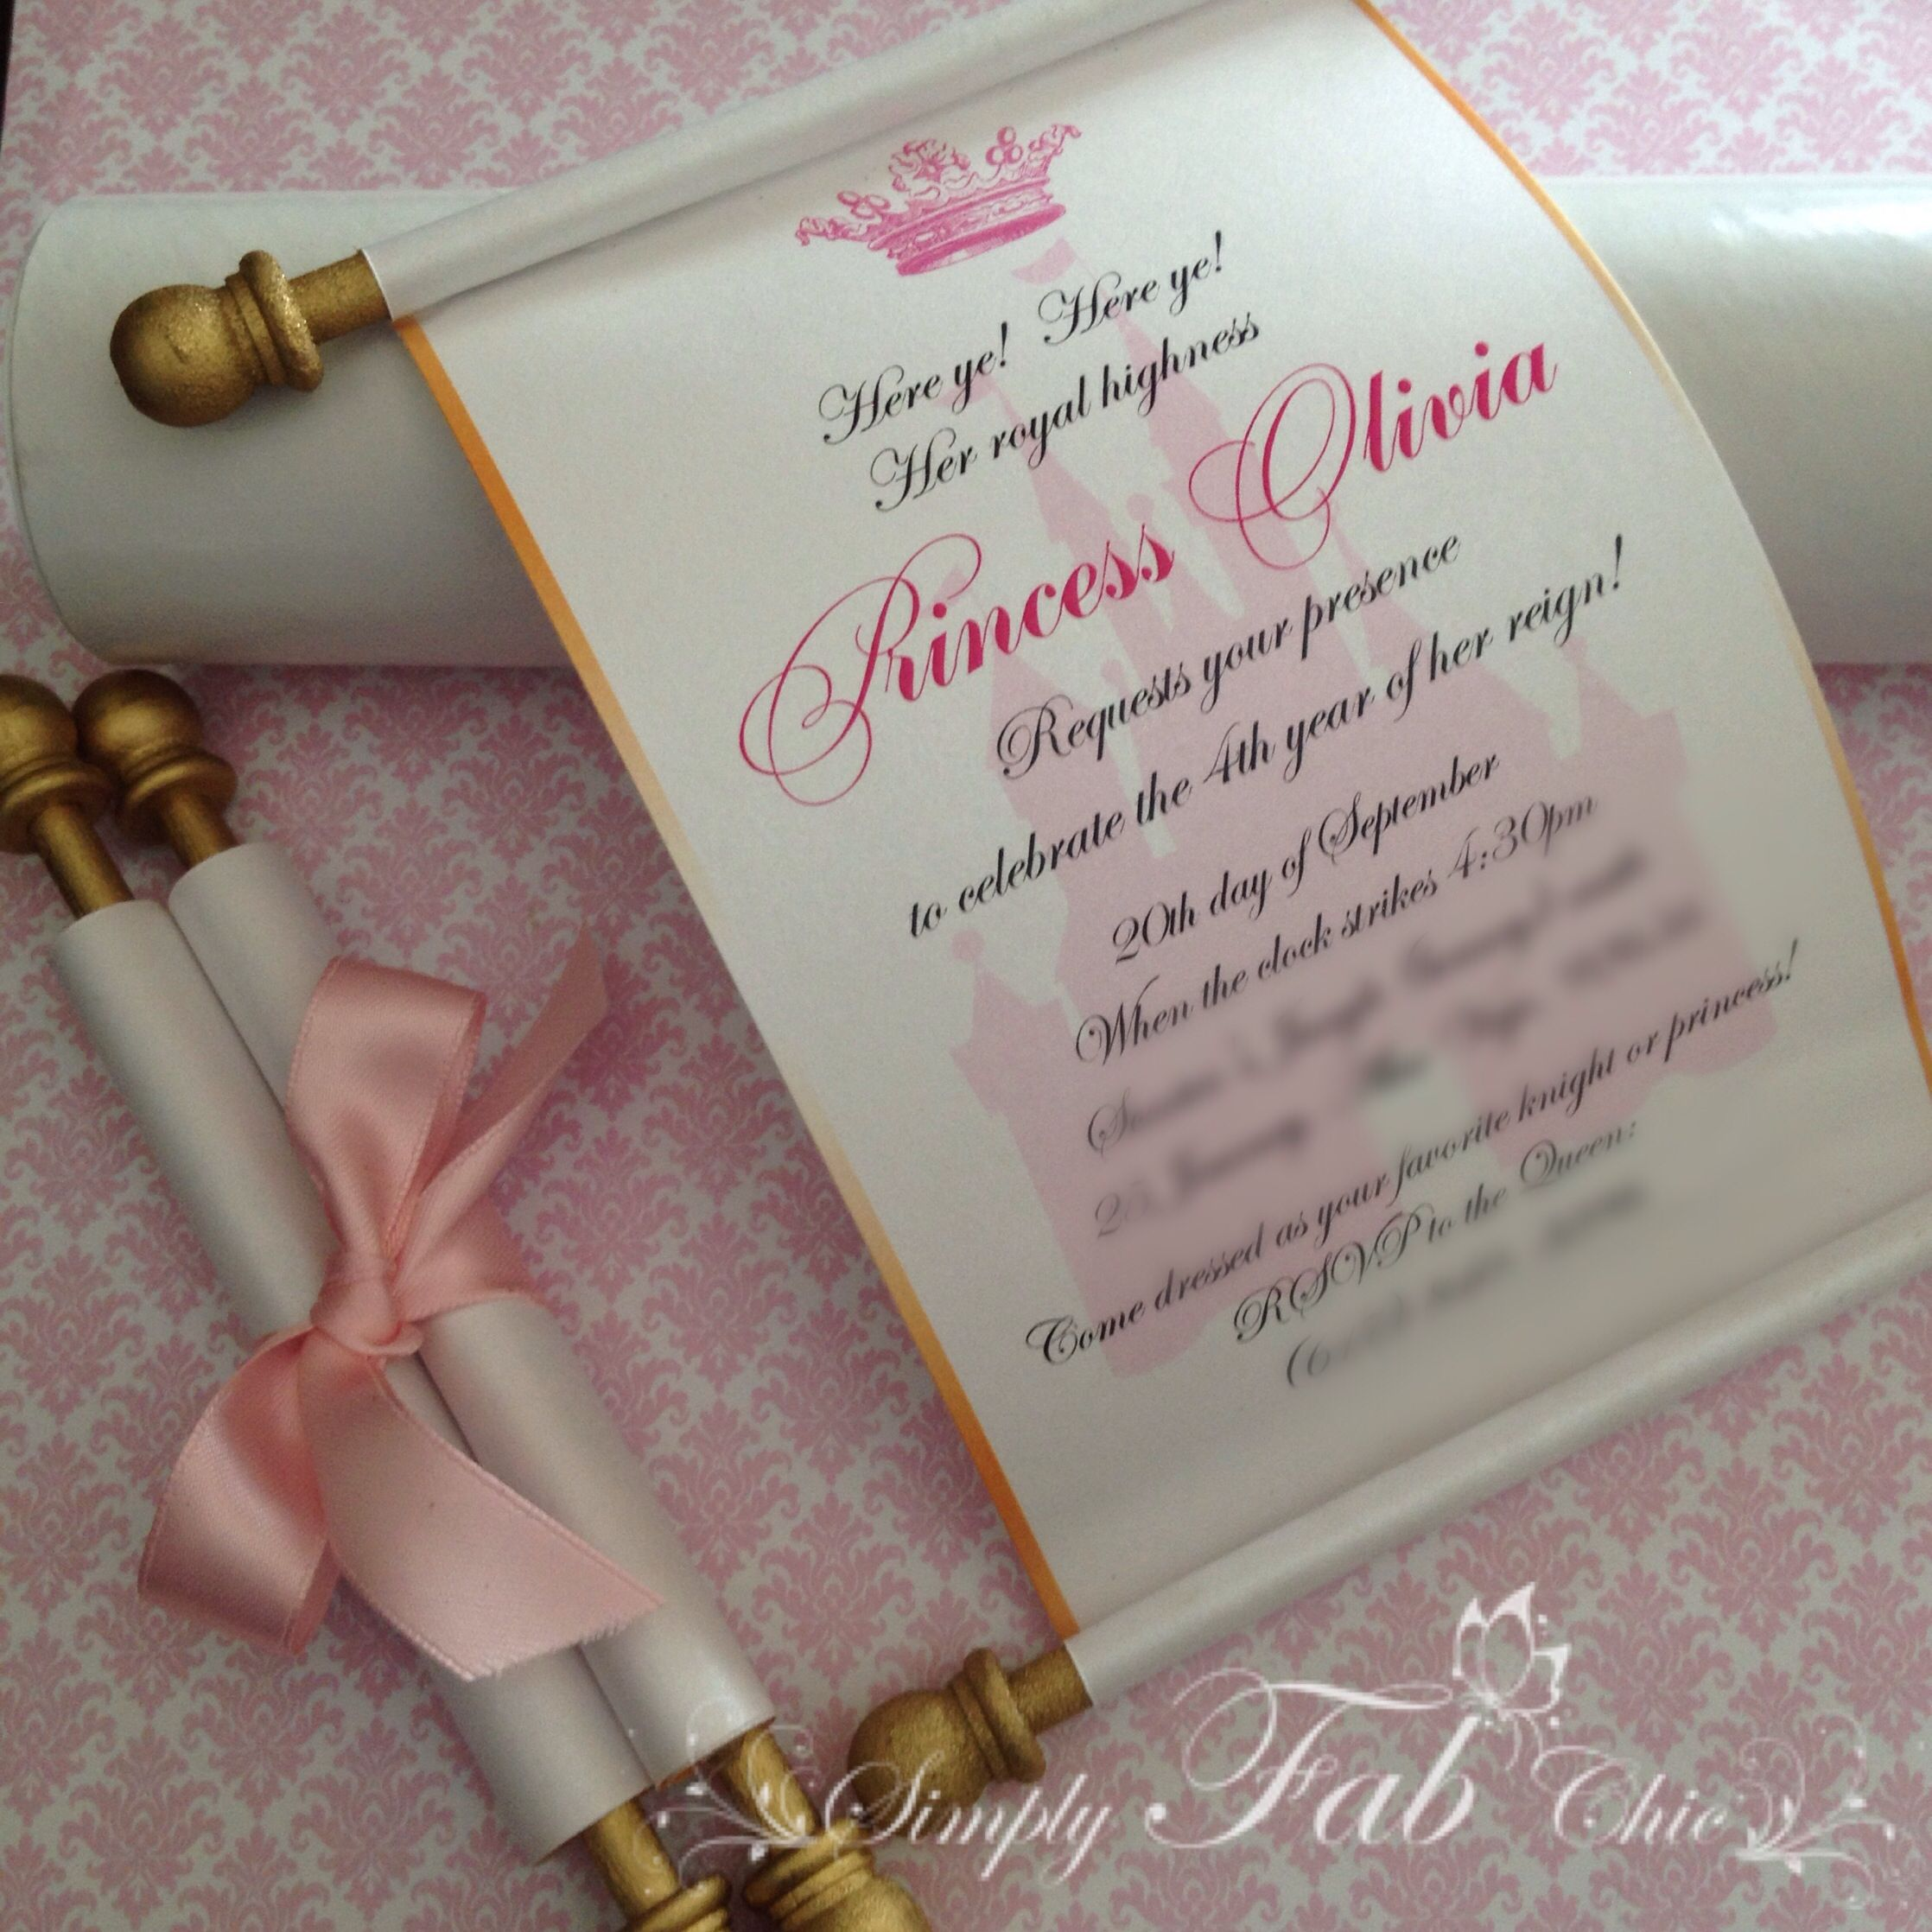 Handmade Invitations and Custom Event Decorations by